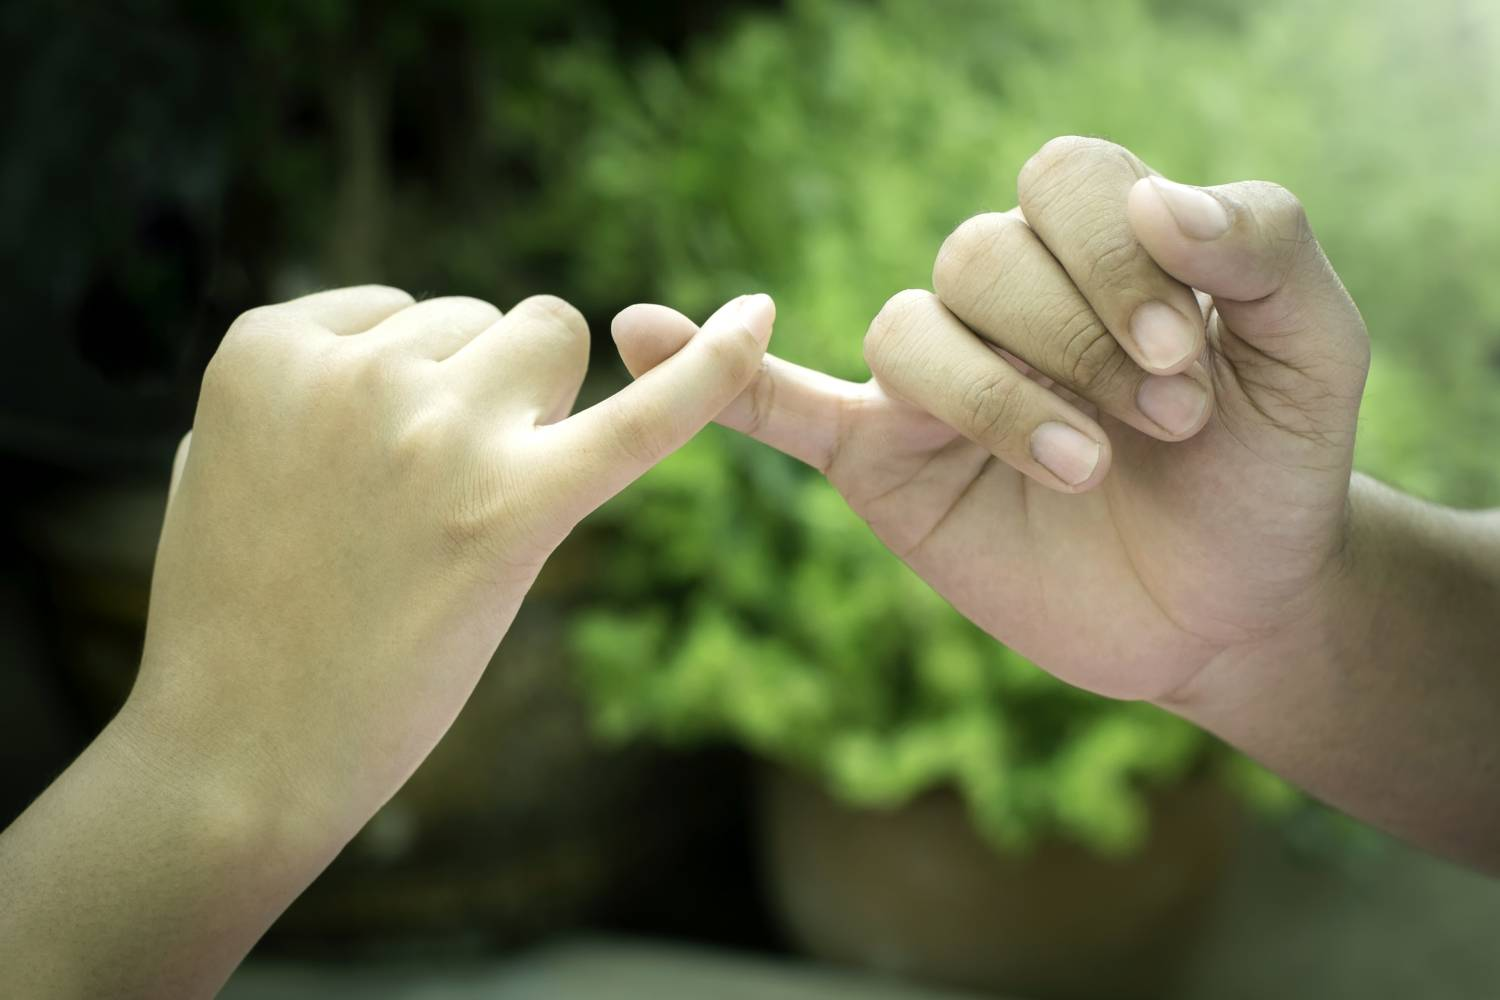 image of two hands doing a pinky swear